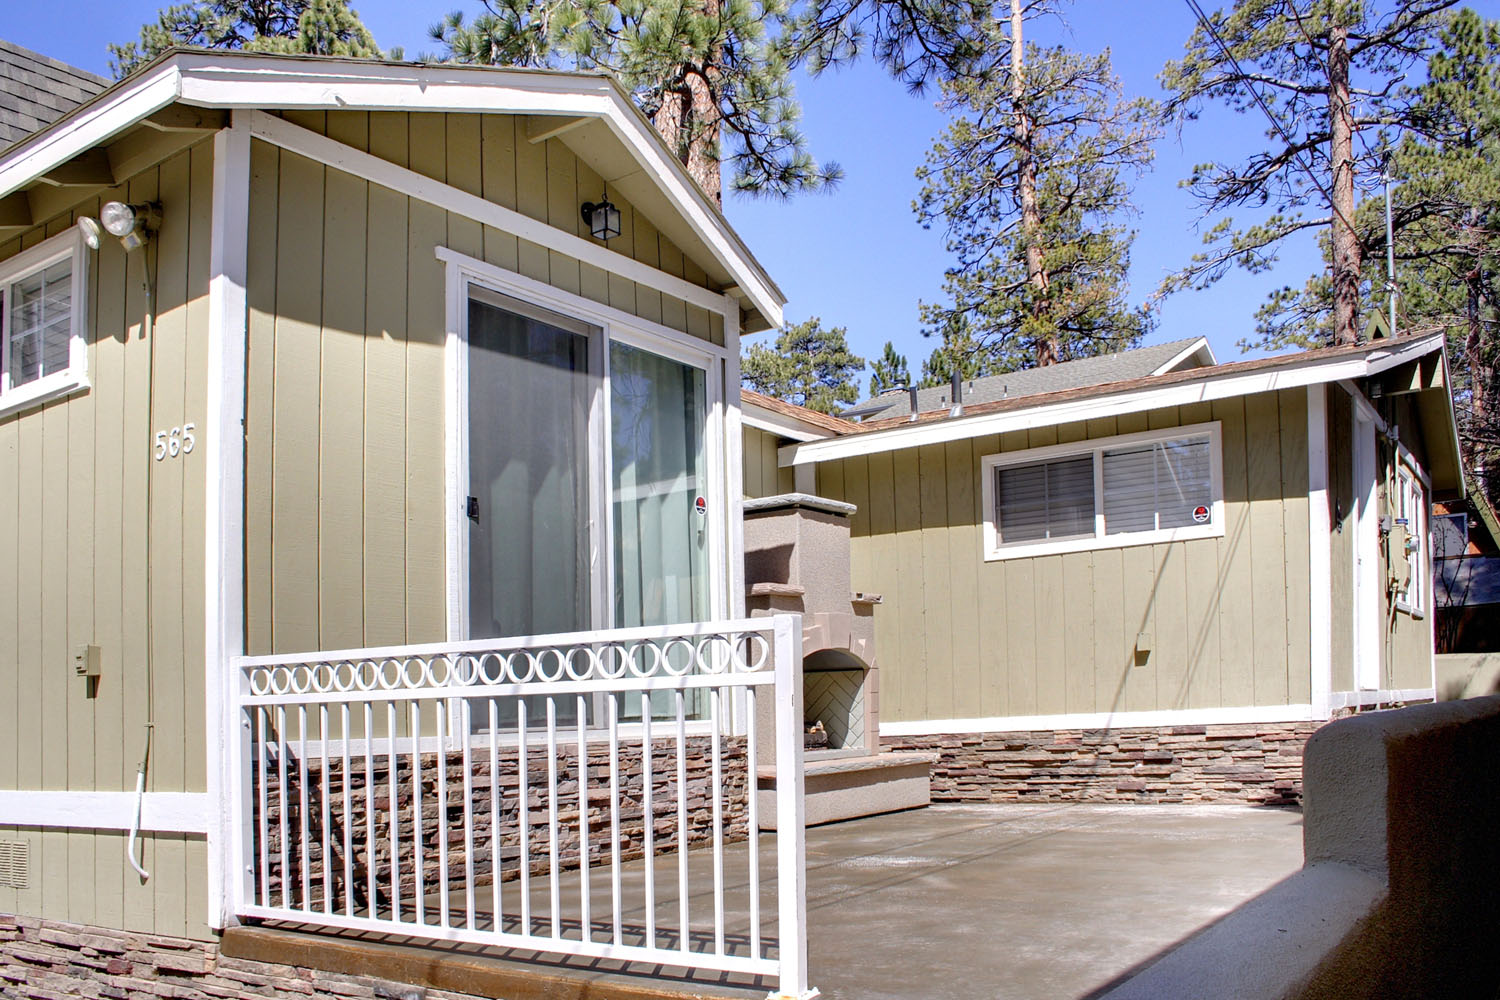 Single Family Home for Sale at 565 Lakewood Big Bear Lake, California, 92315 United States